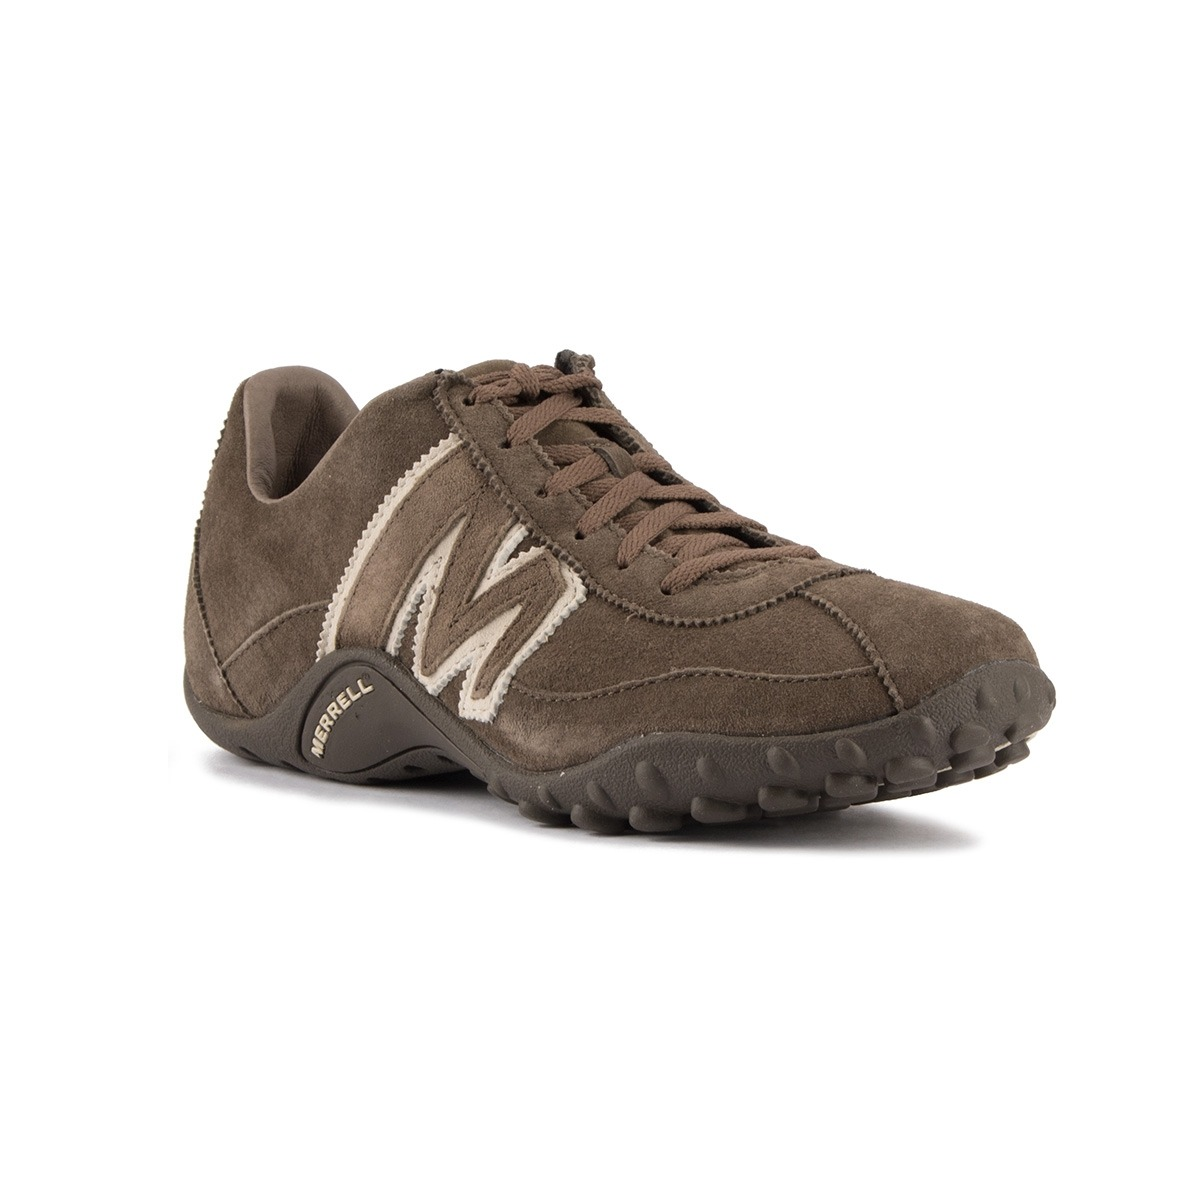 Merrell Zapatilla Sprint Blast Leather Gunsmoke White Hombre